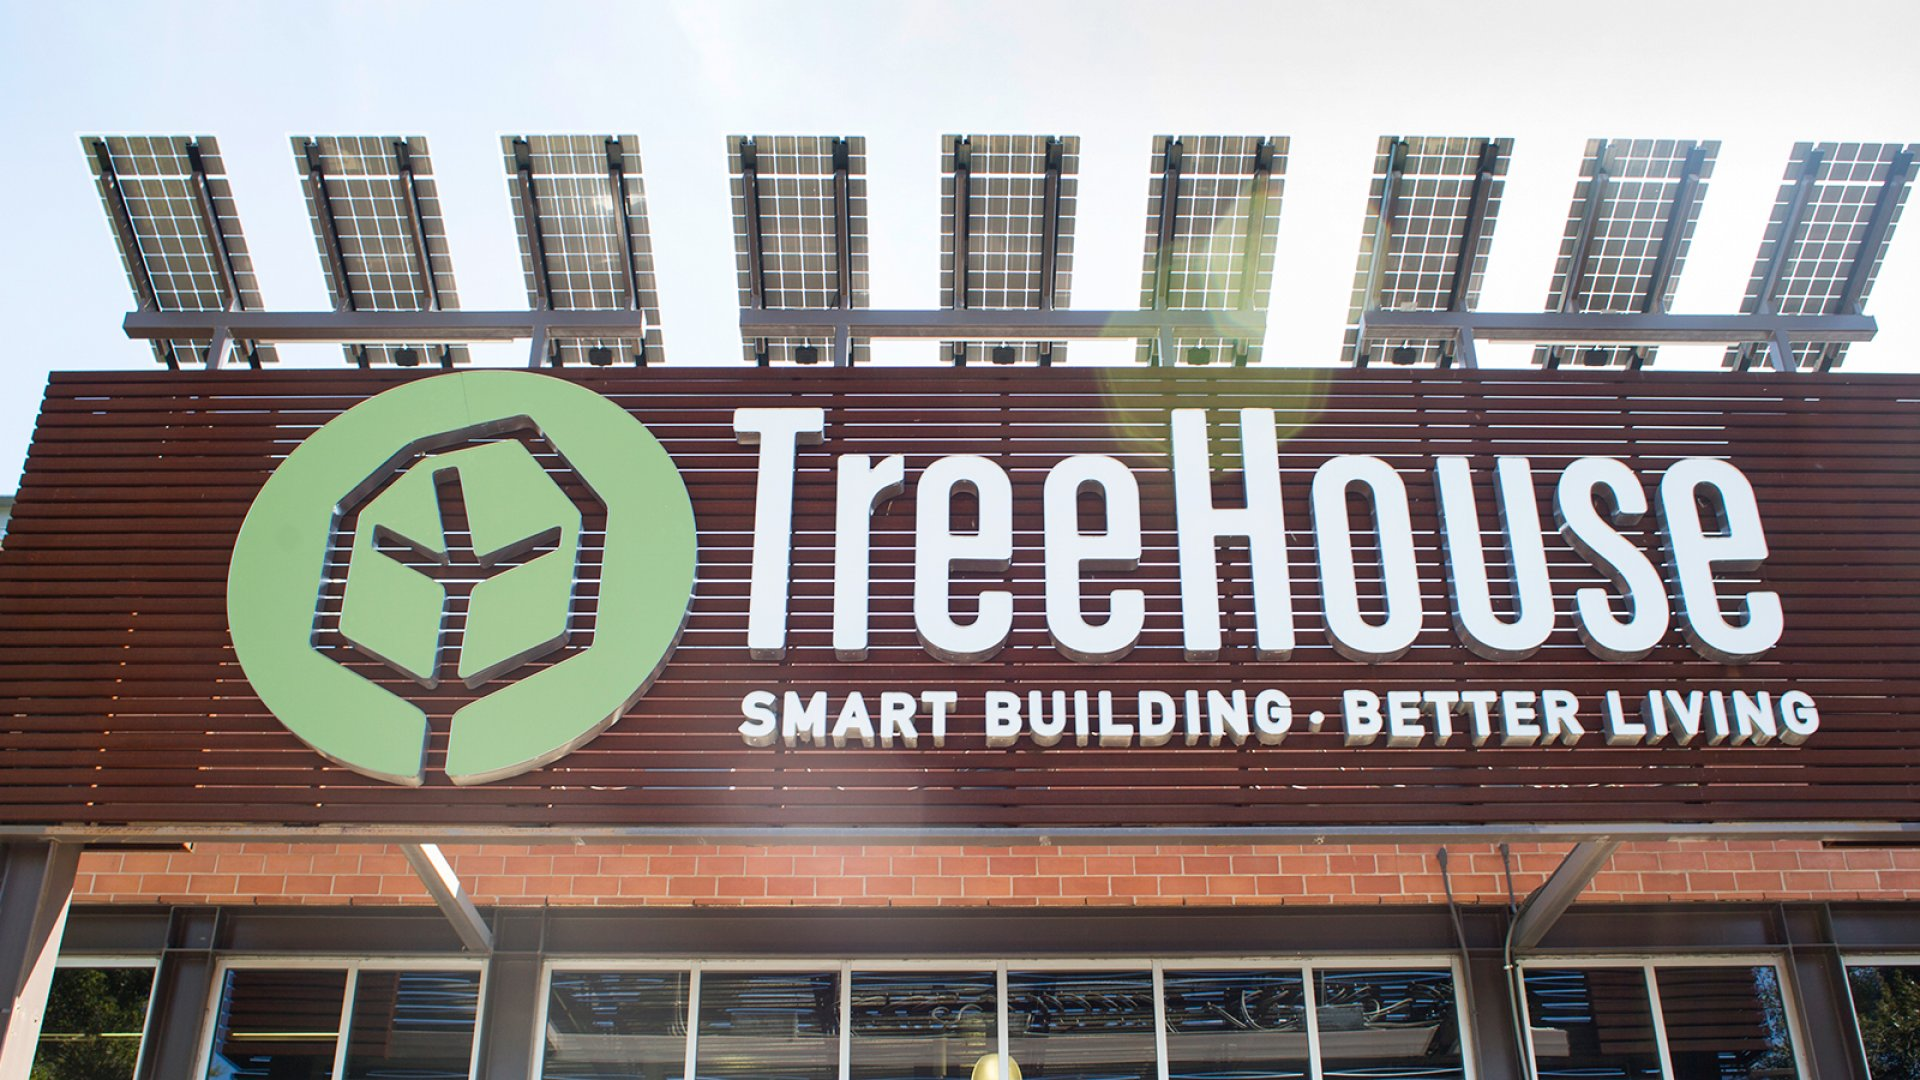 The inviting, solar panel-bedecked entrance to TreeHouse's flagship Austin store.